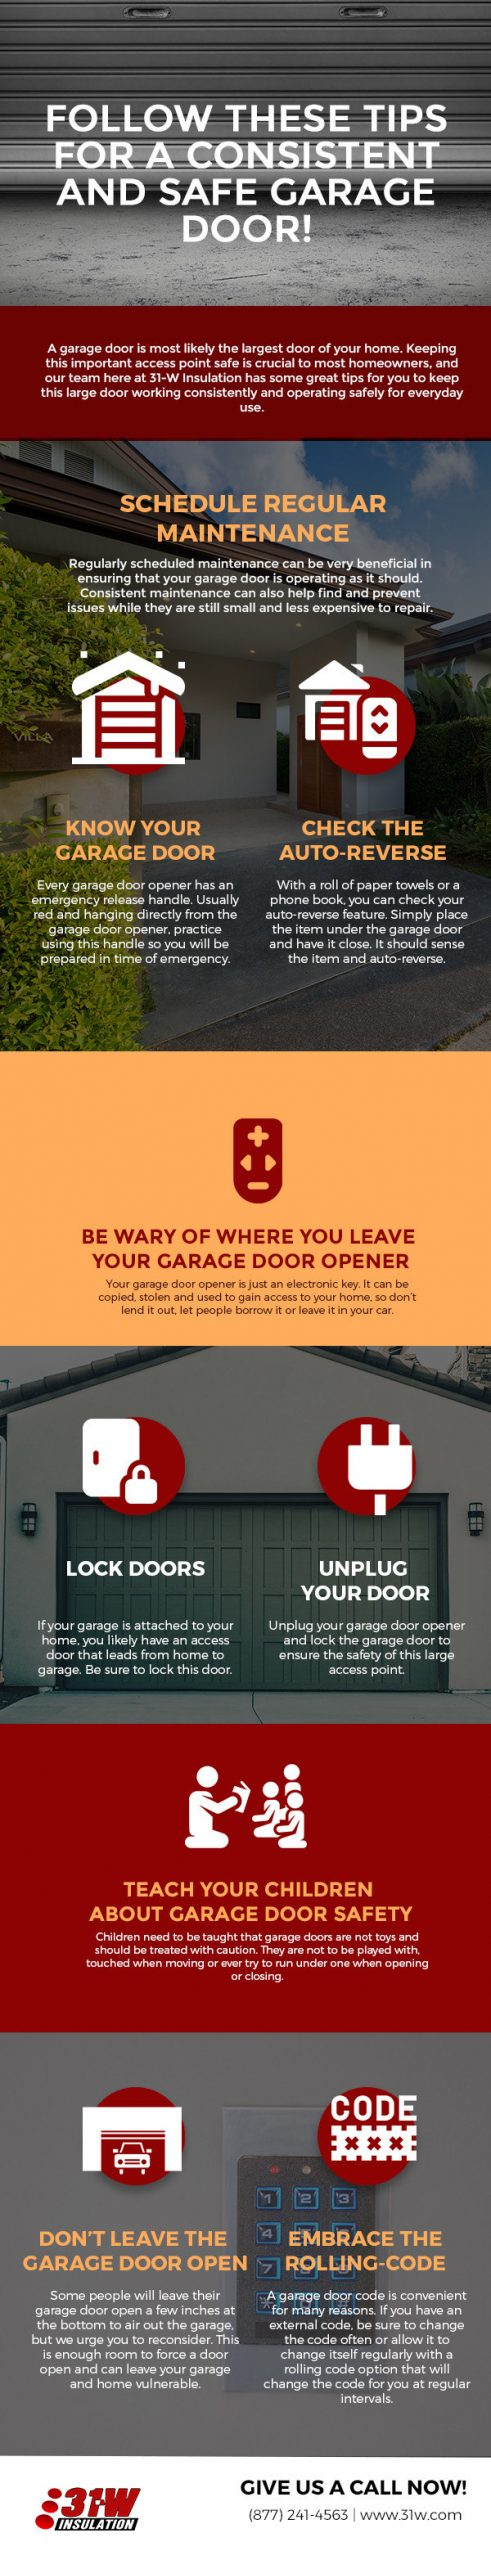 Follow these tips for a consistent and safe garage door